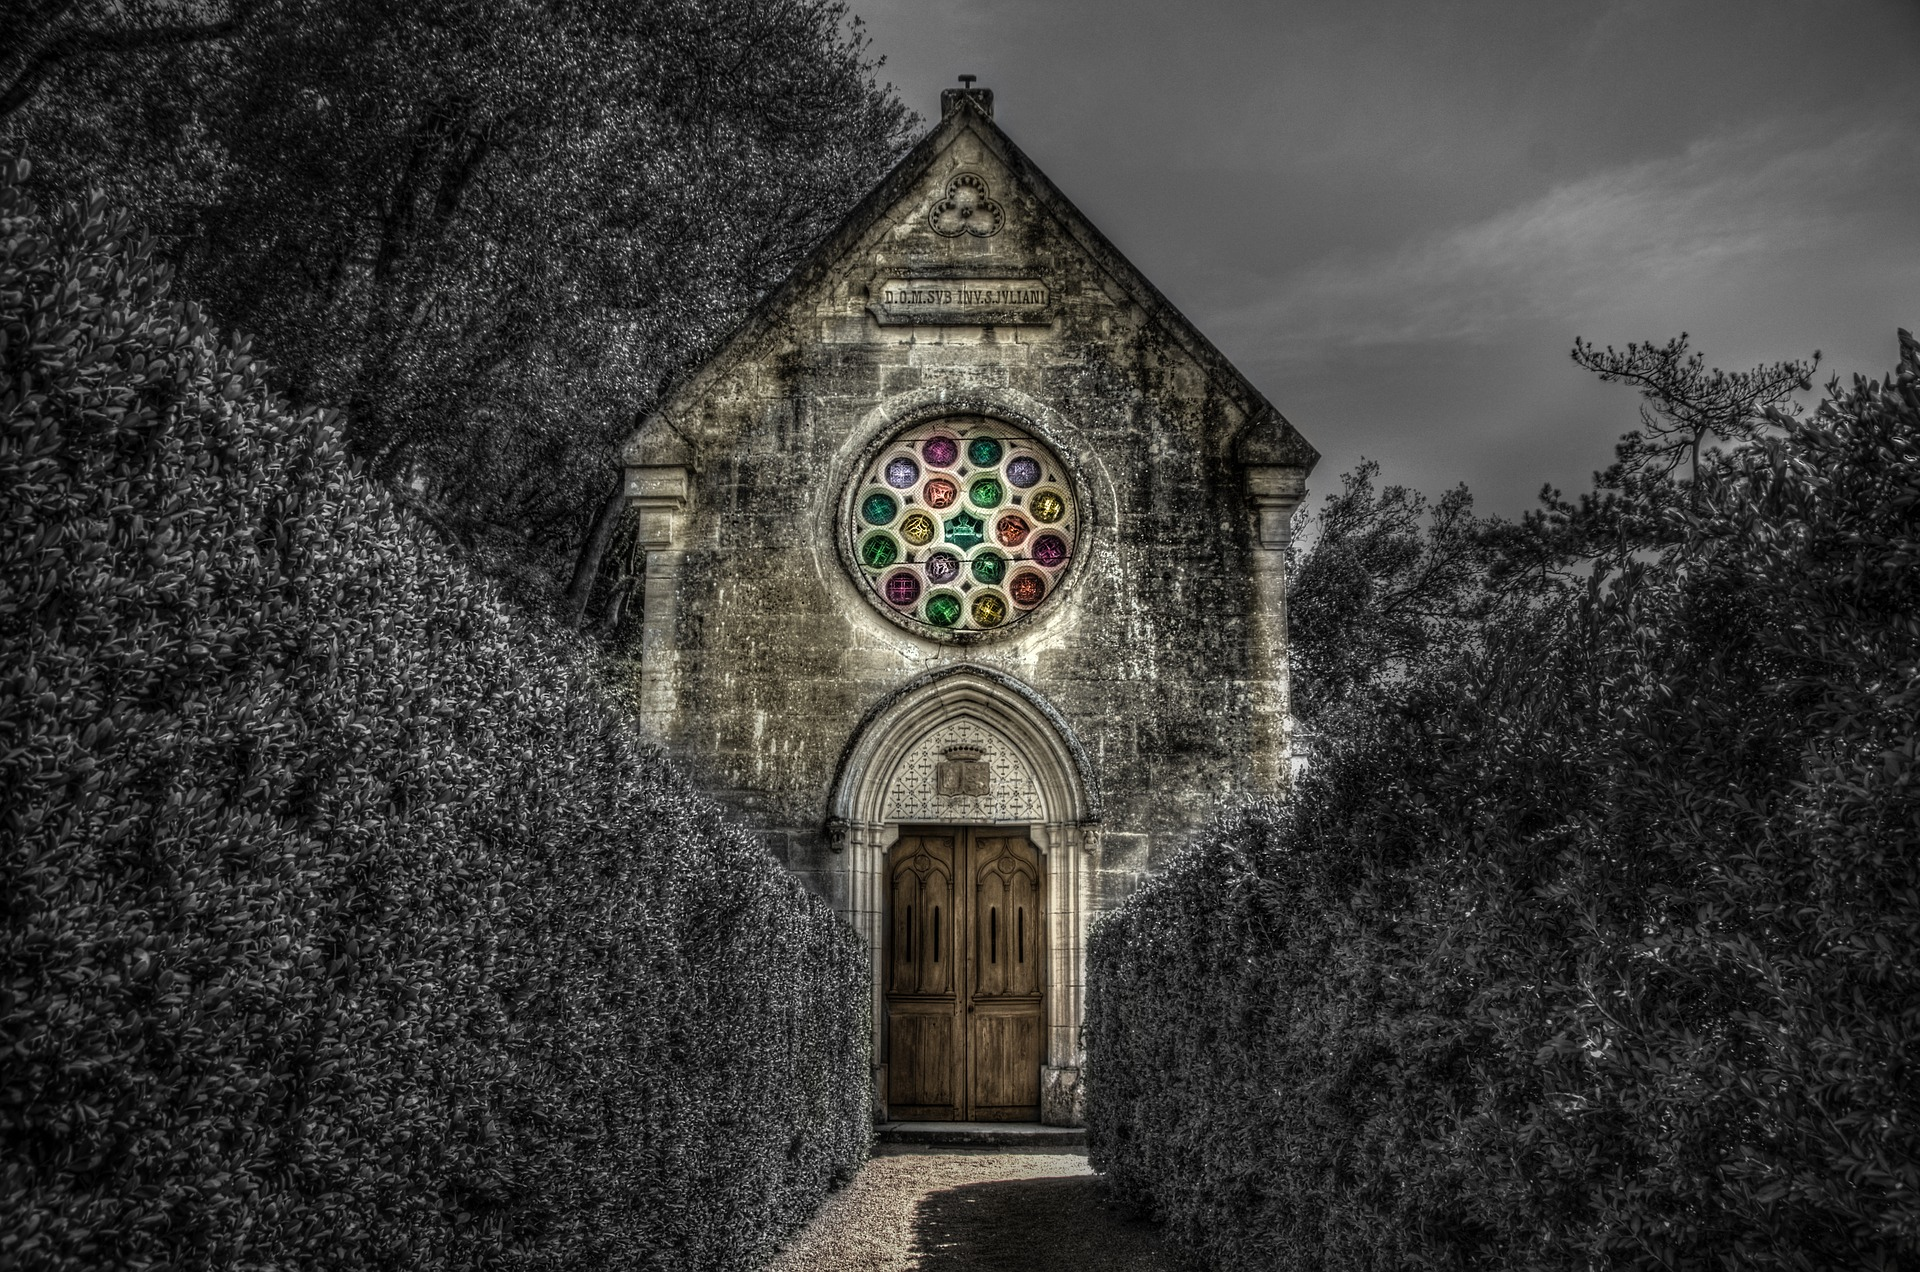 spooky catholic church in forest